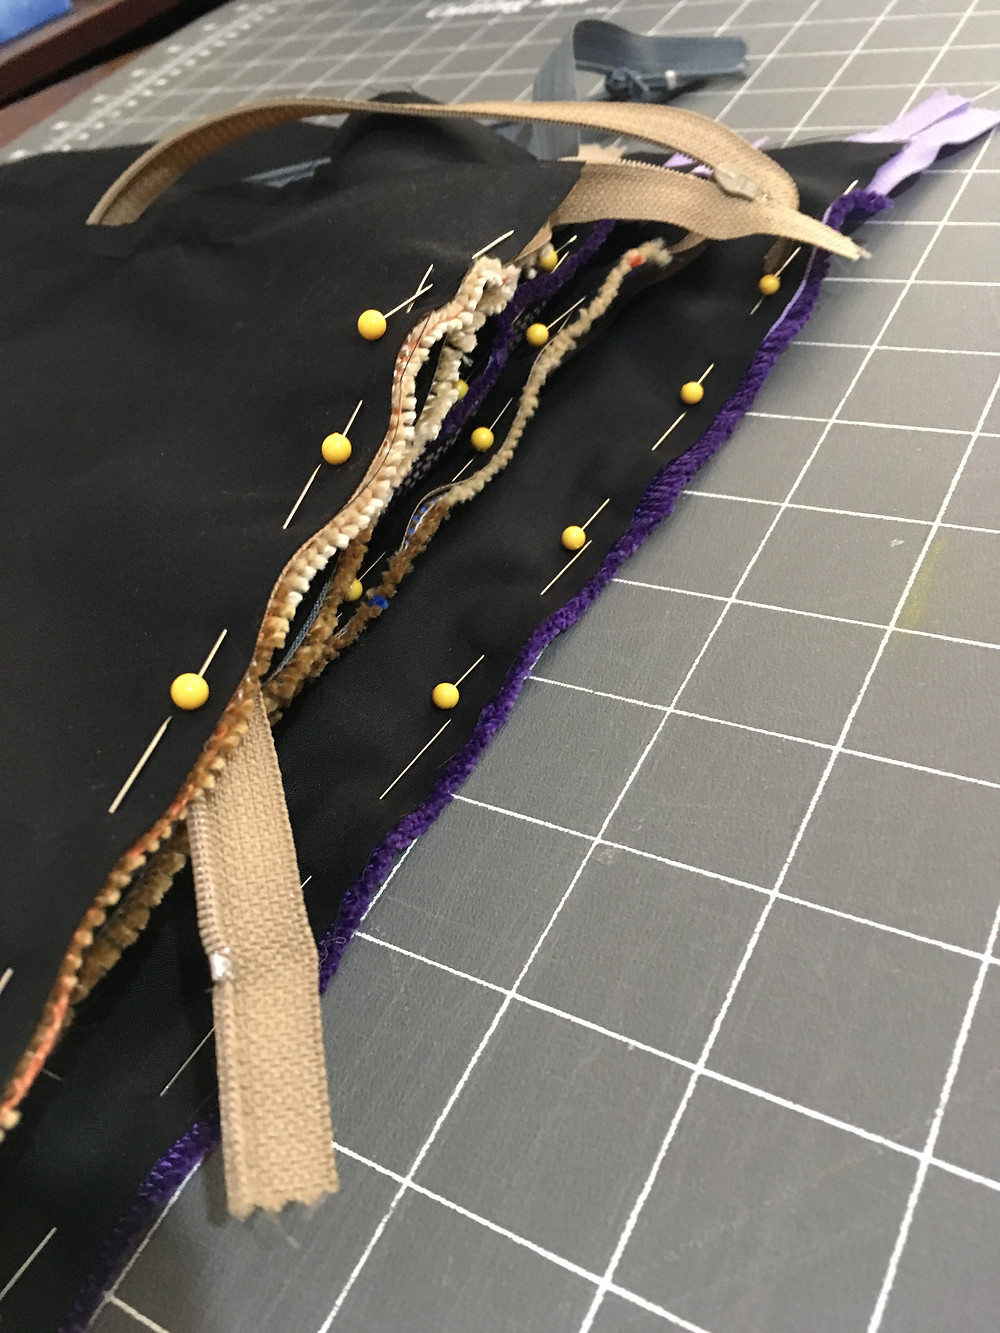 ready to sew the second side to the zipper